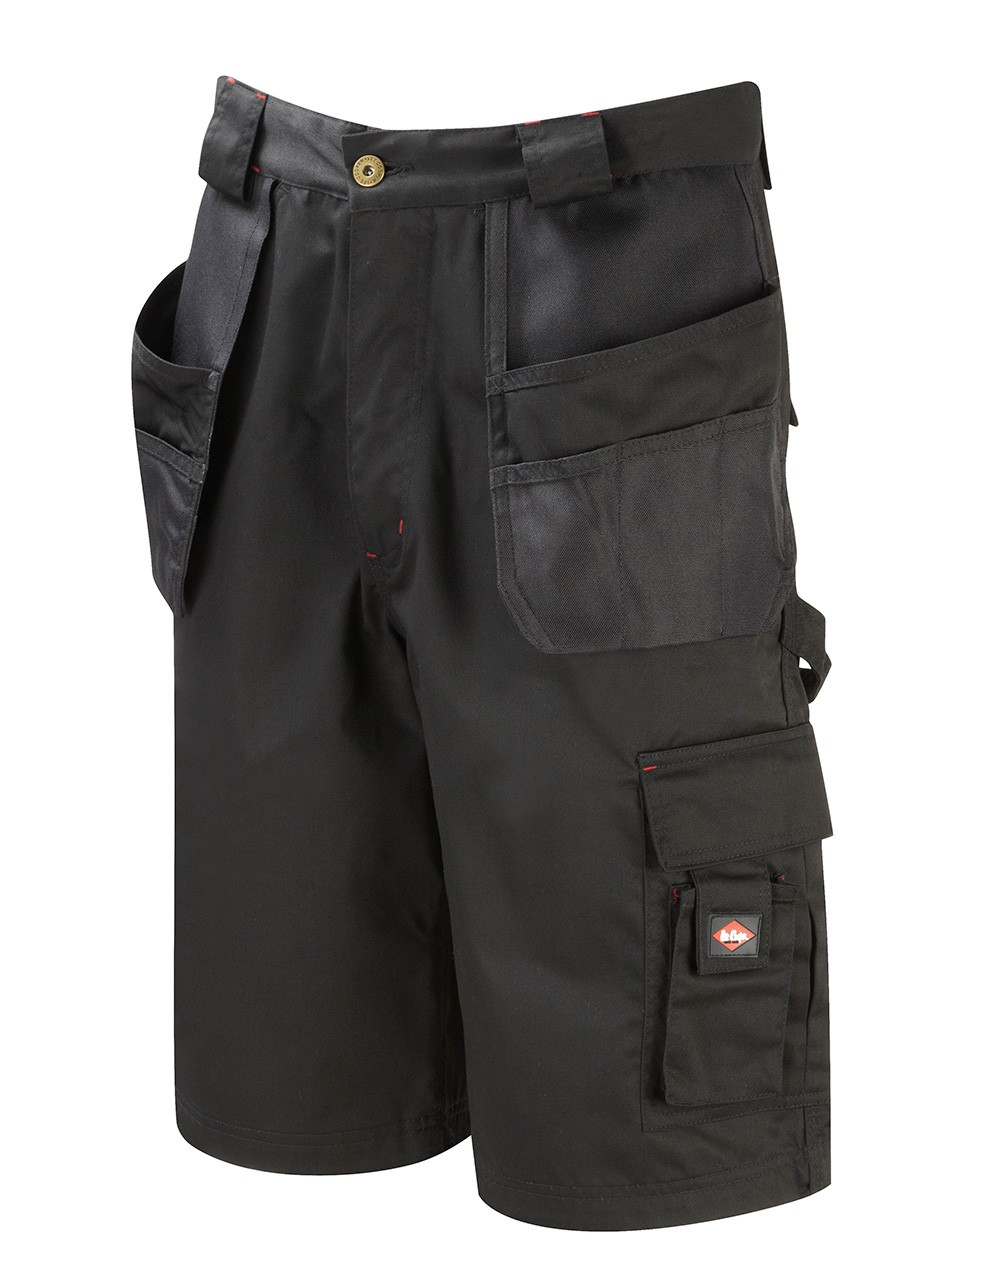 holdter pocket cargo short